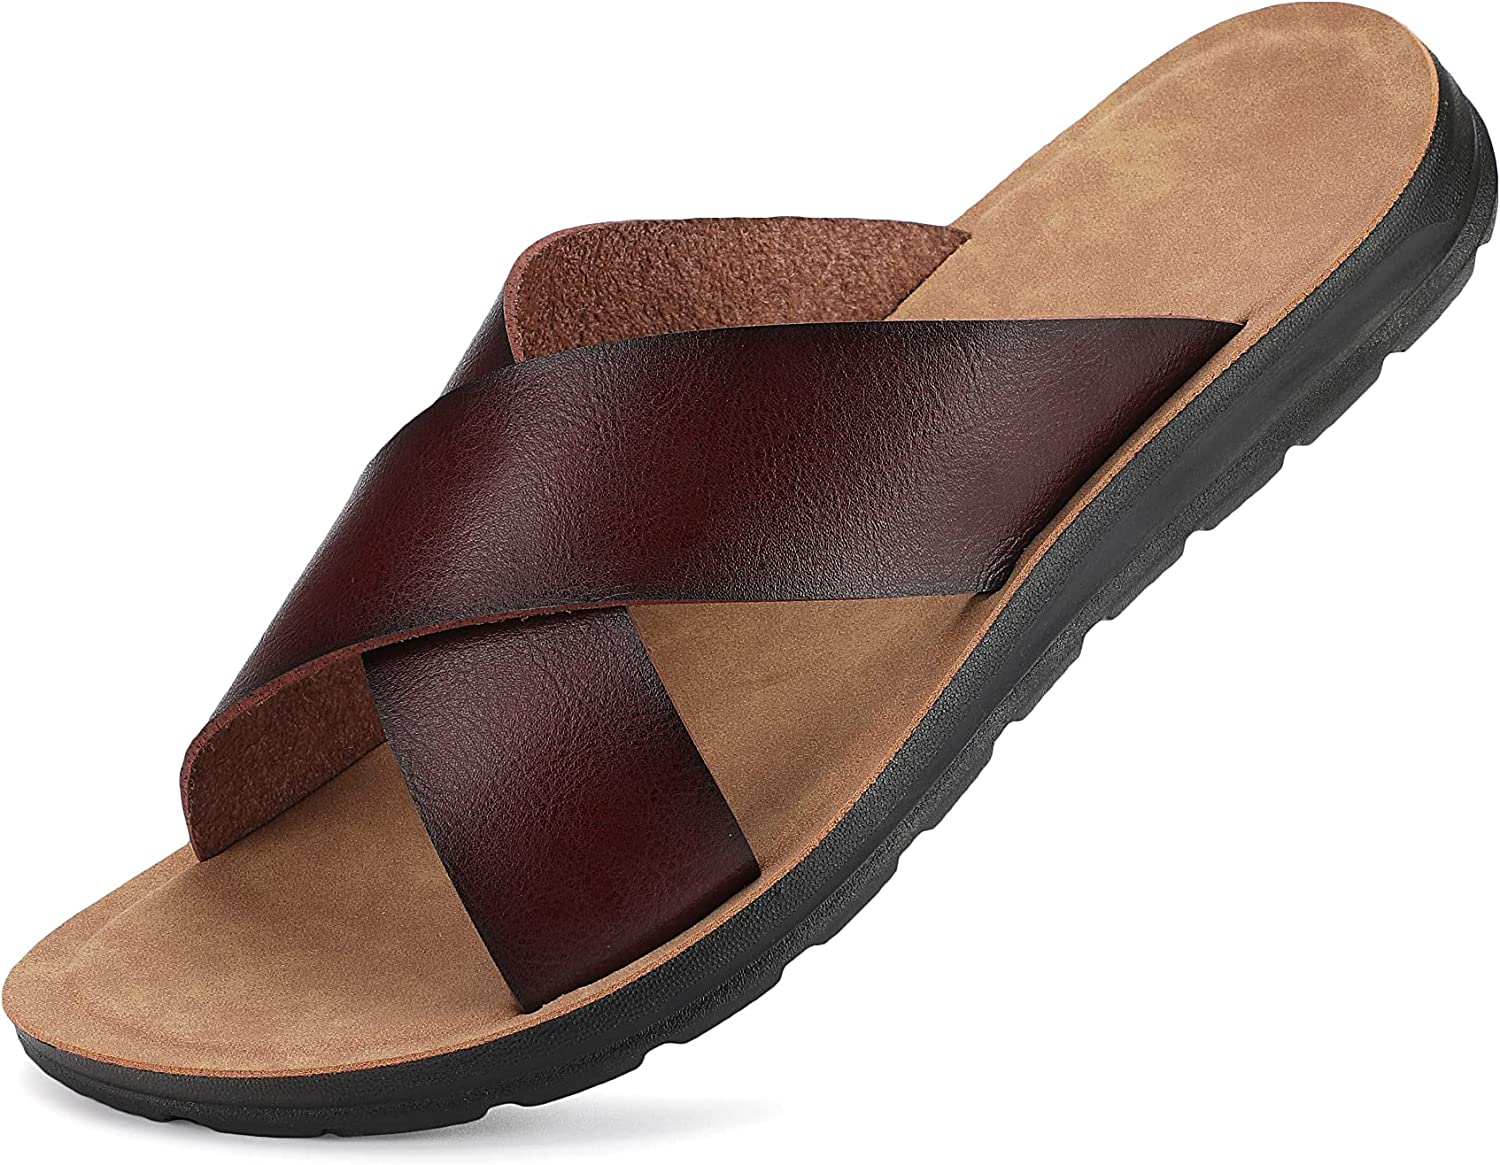 PHEFEE Men's Sandals New life Cross Slides Soft Charlotte Mall Footbed Comfort Cushion A